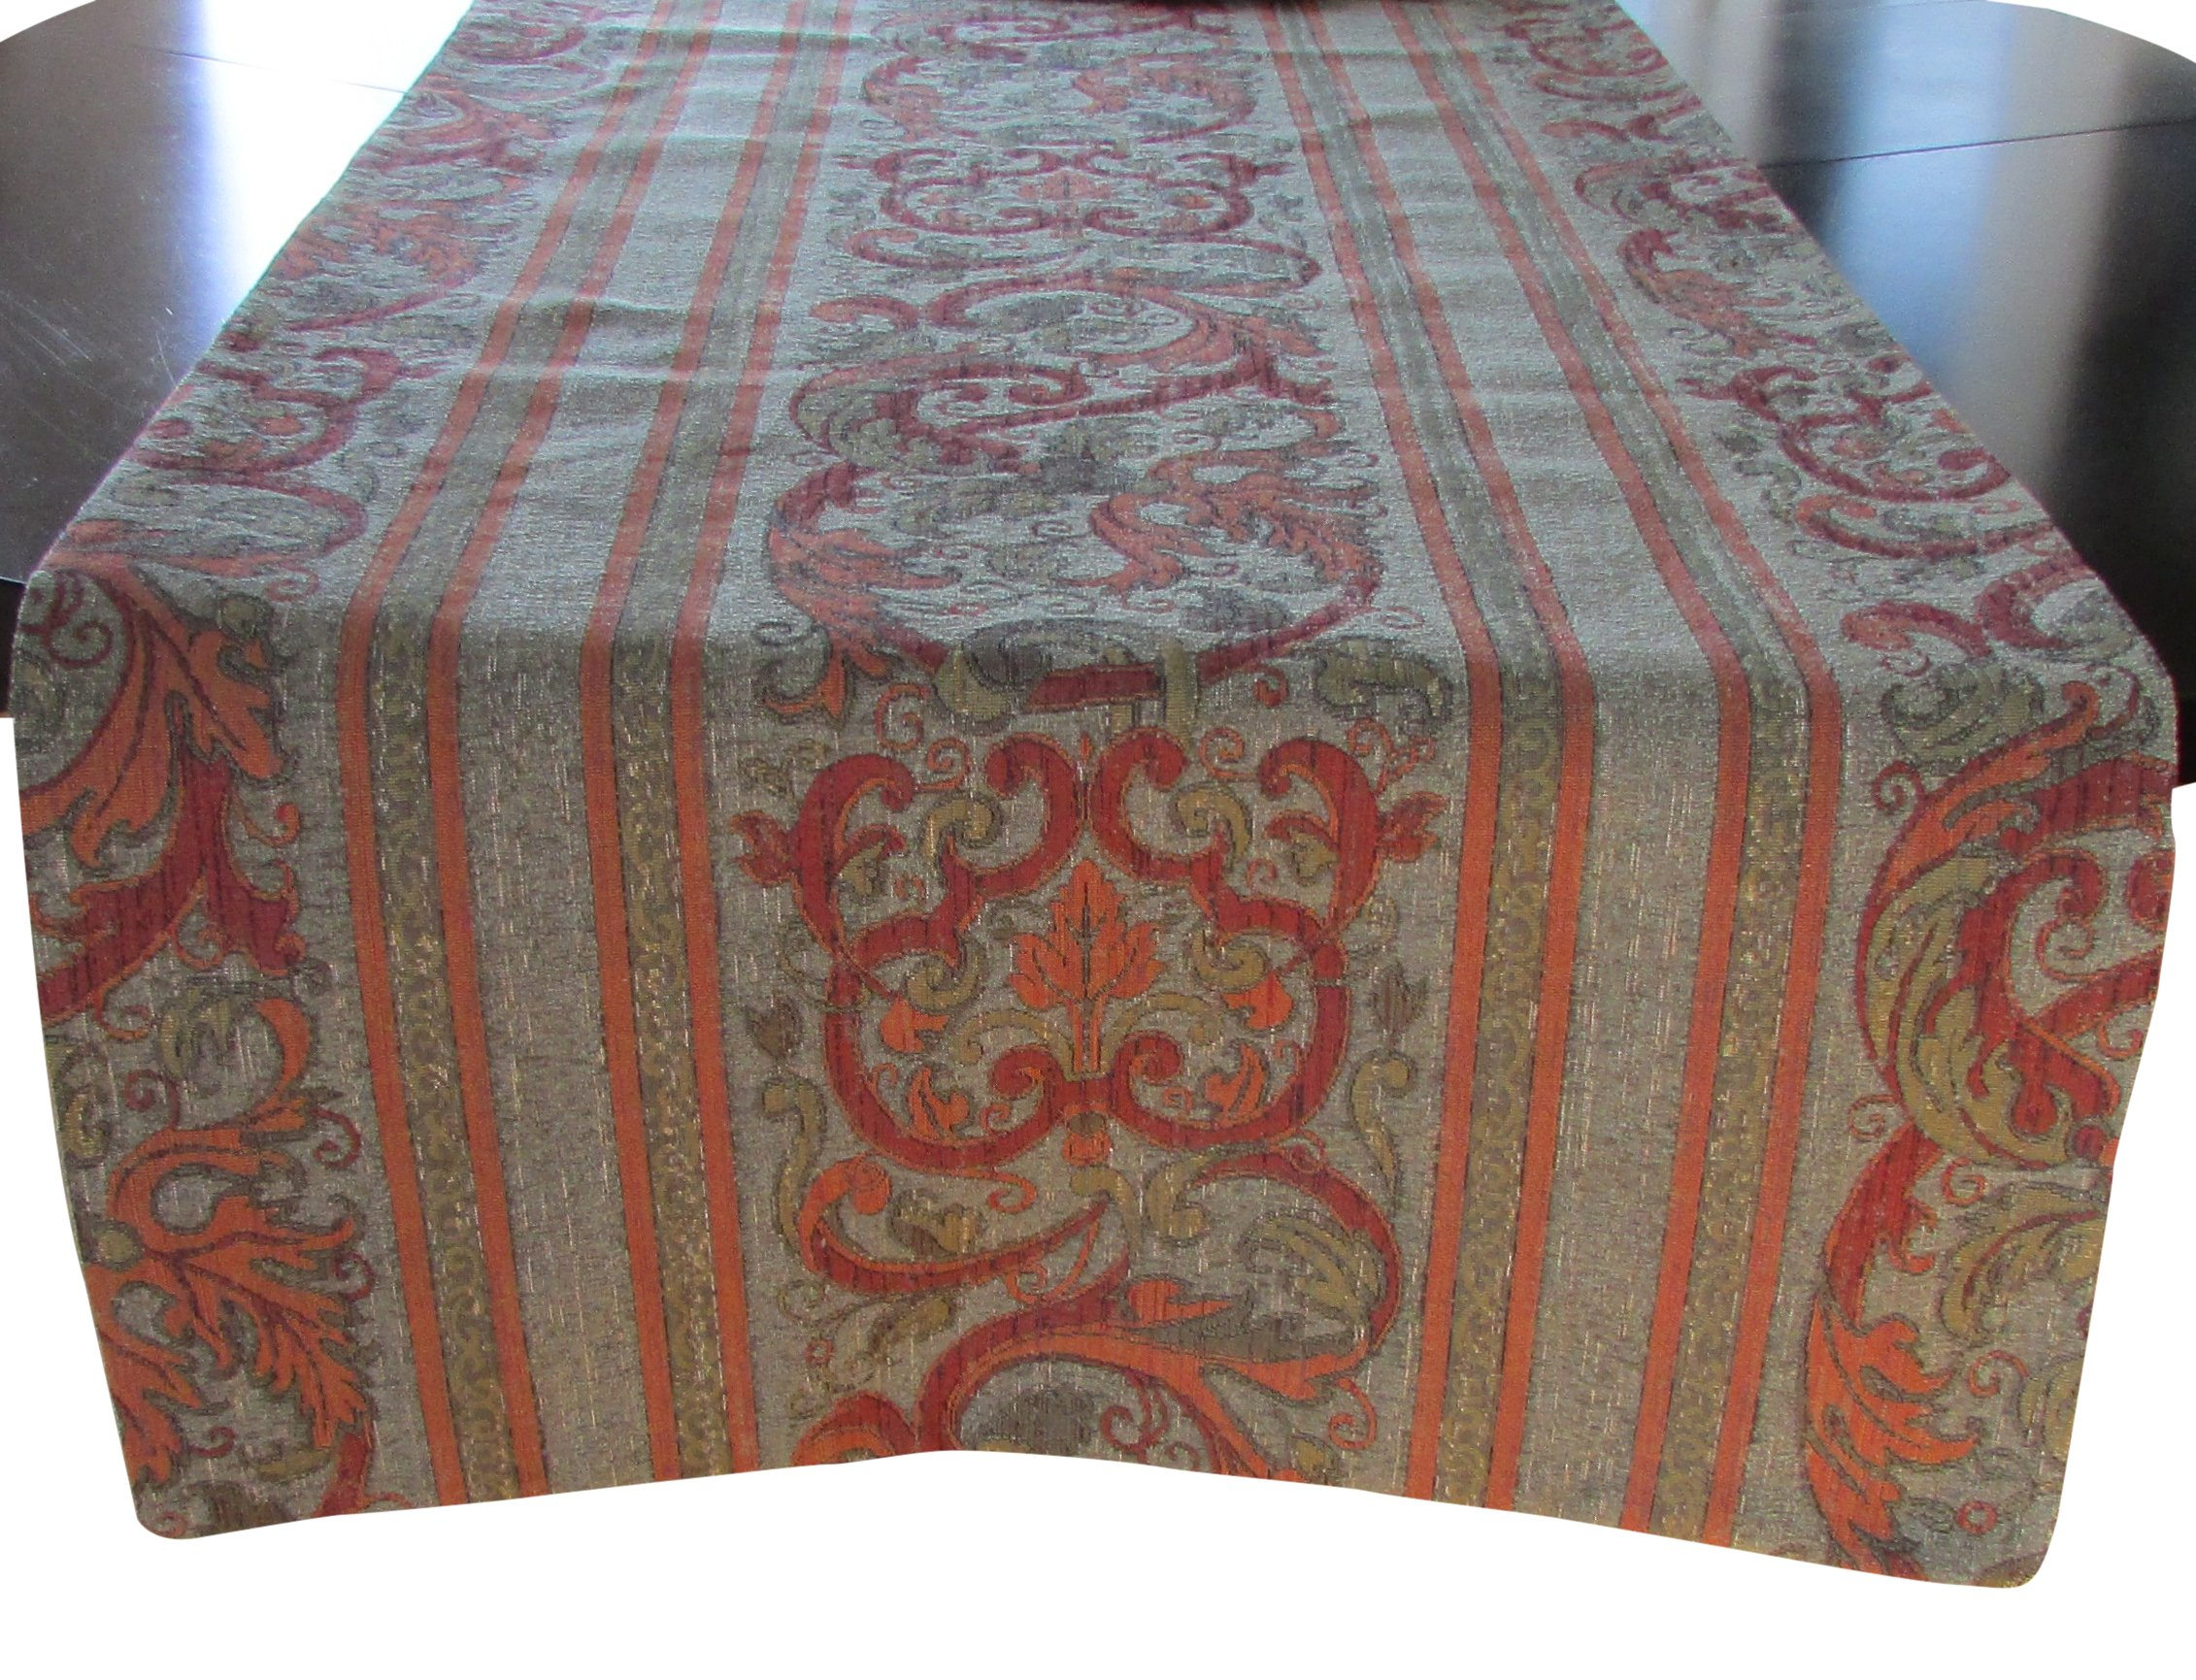 Corona Decor Extra-Wide Italian Woven Table Runner, 95 by 26-Inch, Olive/Red by Corona Decor Co.